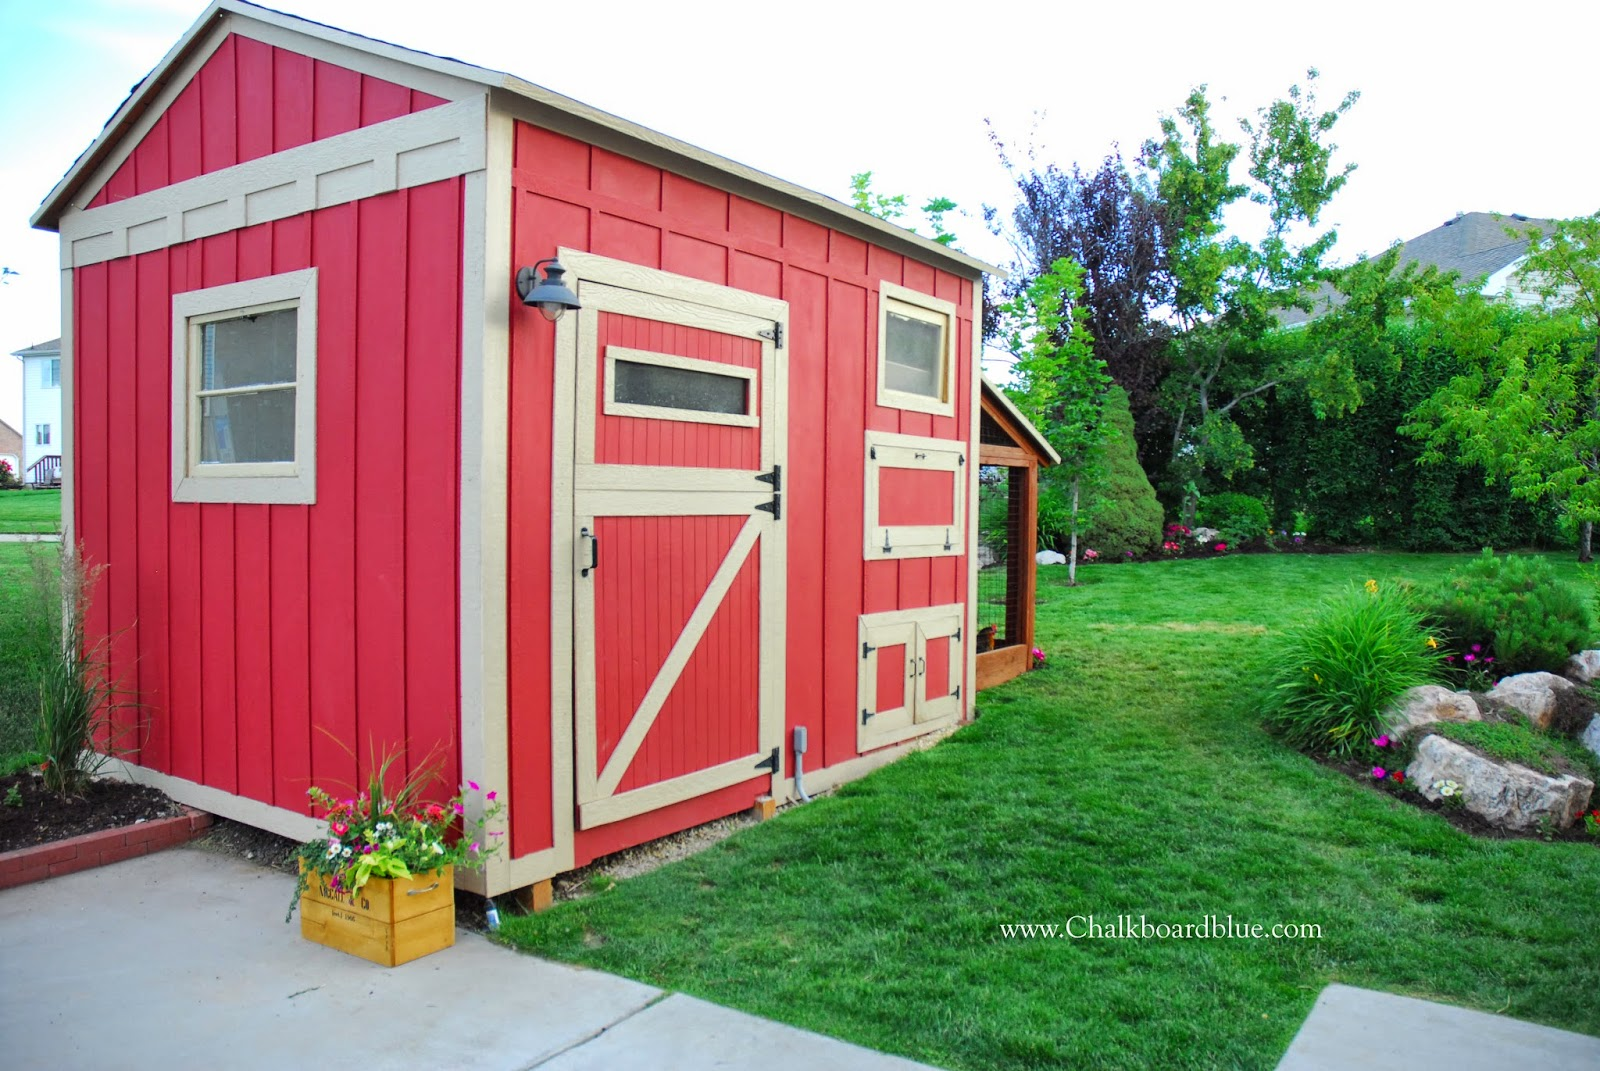 How To Build A Chicken Coop With Attached Storage Shed By Chalkboardblue  Featured On Remodelaholic